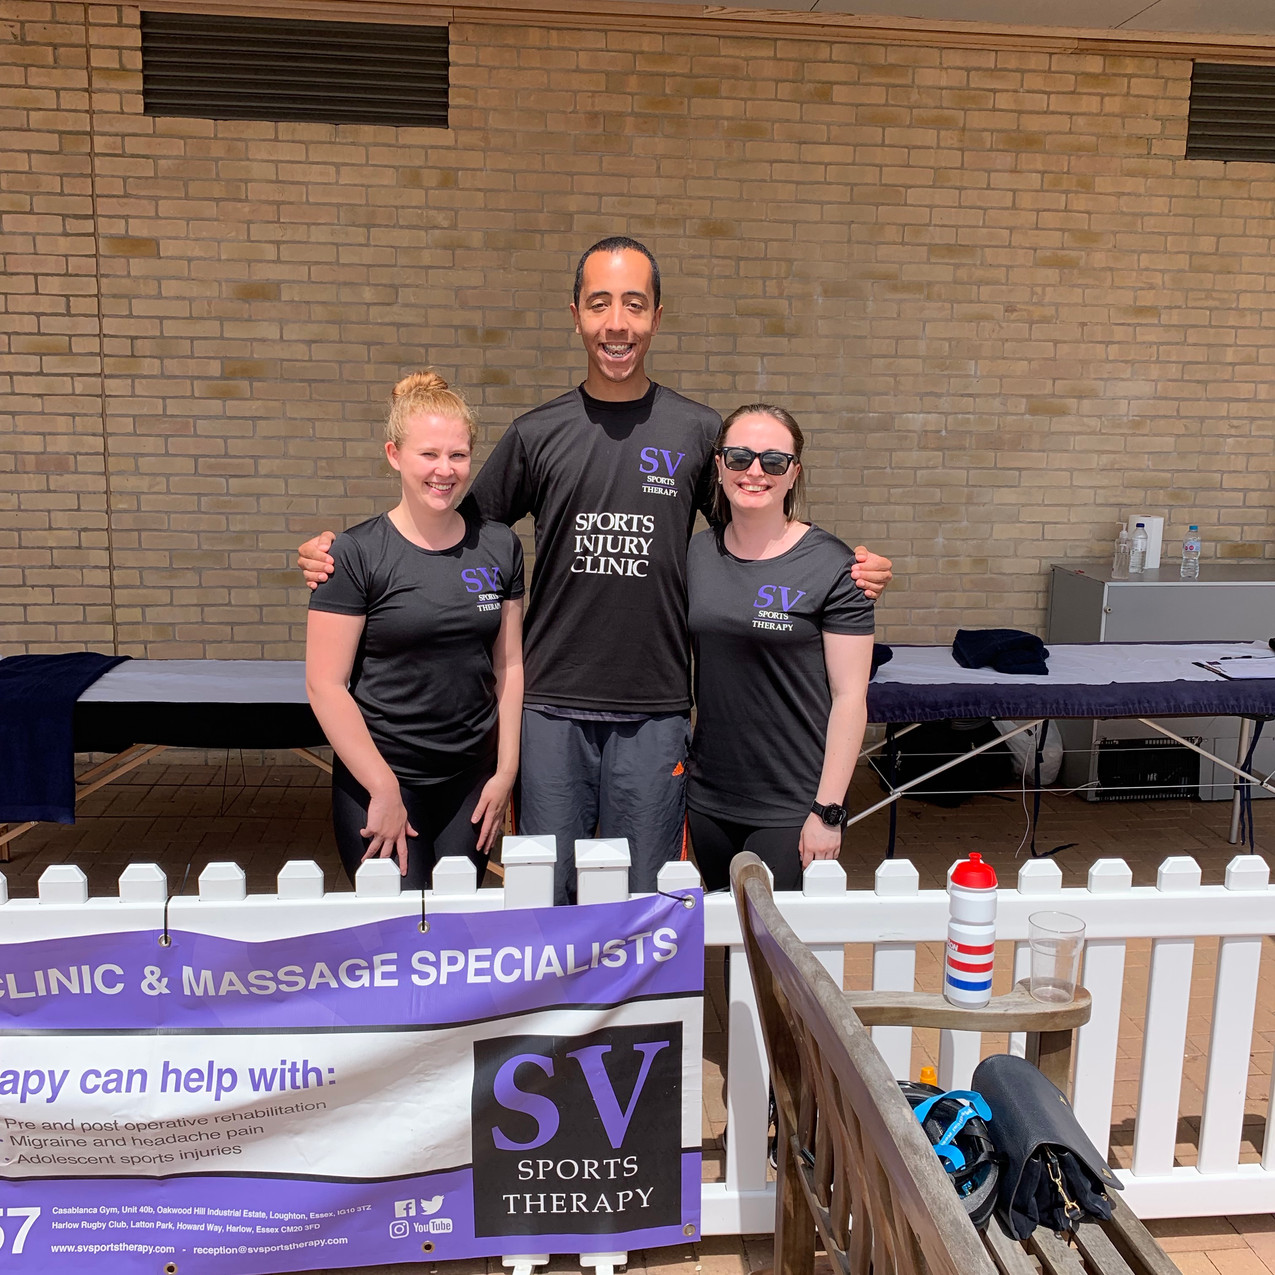 SV events team supports annual Aon chari